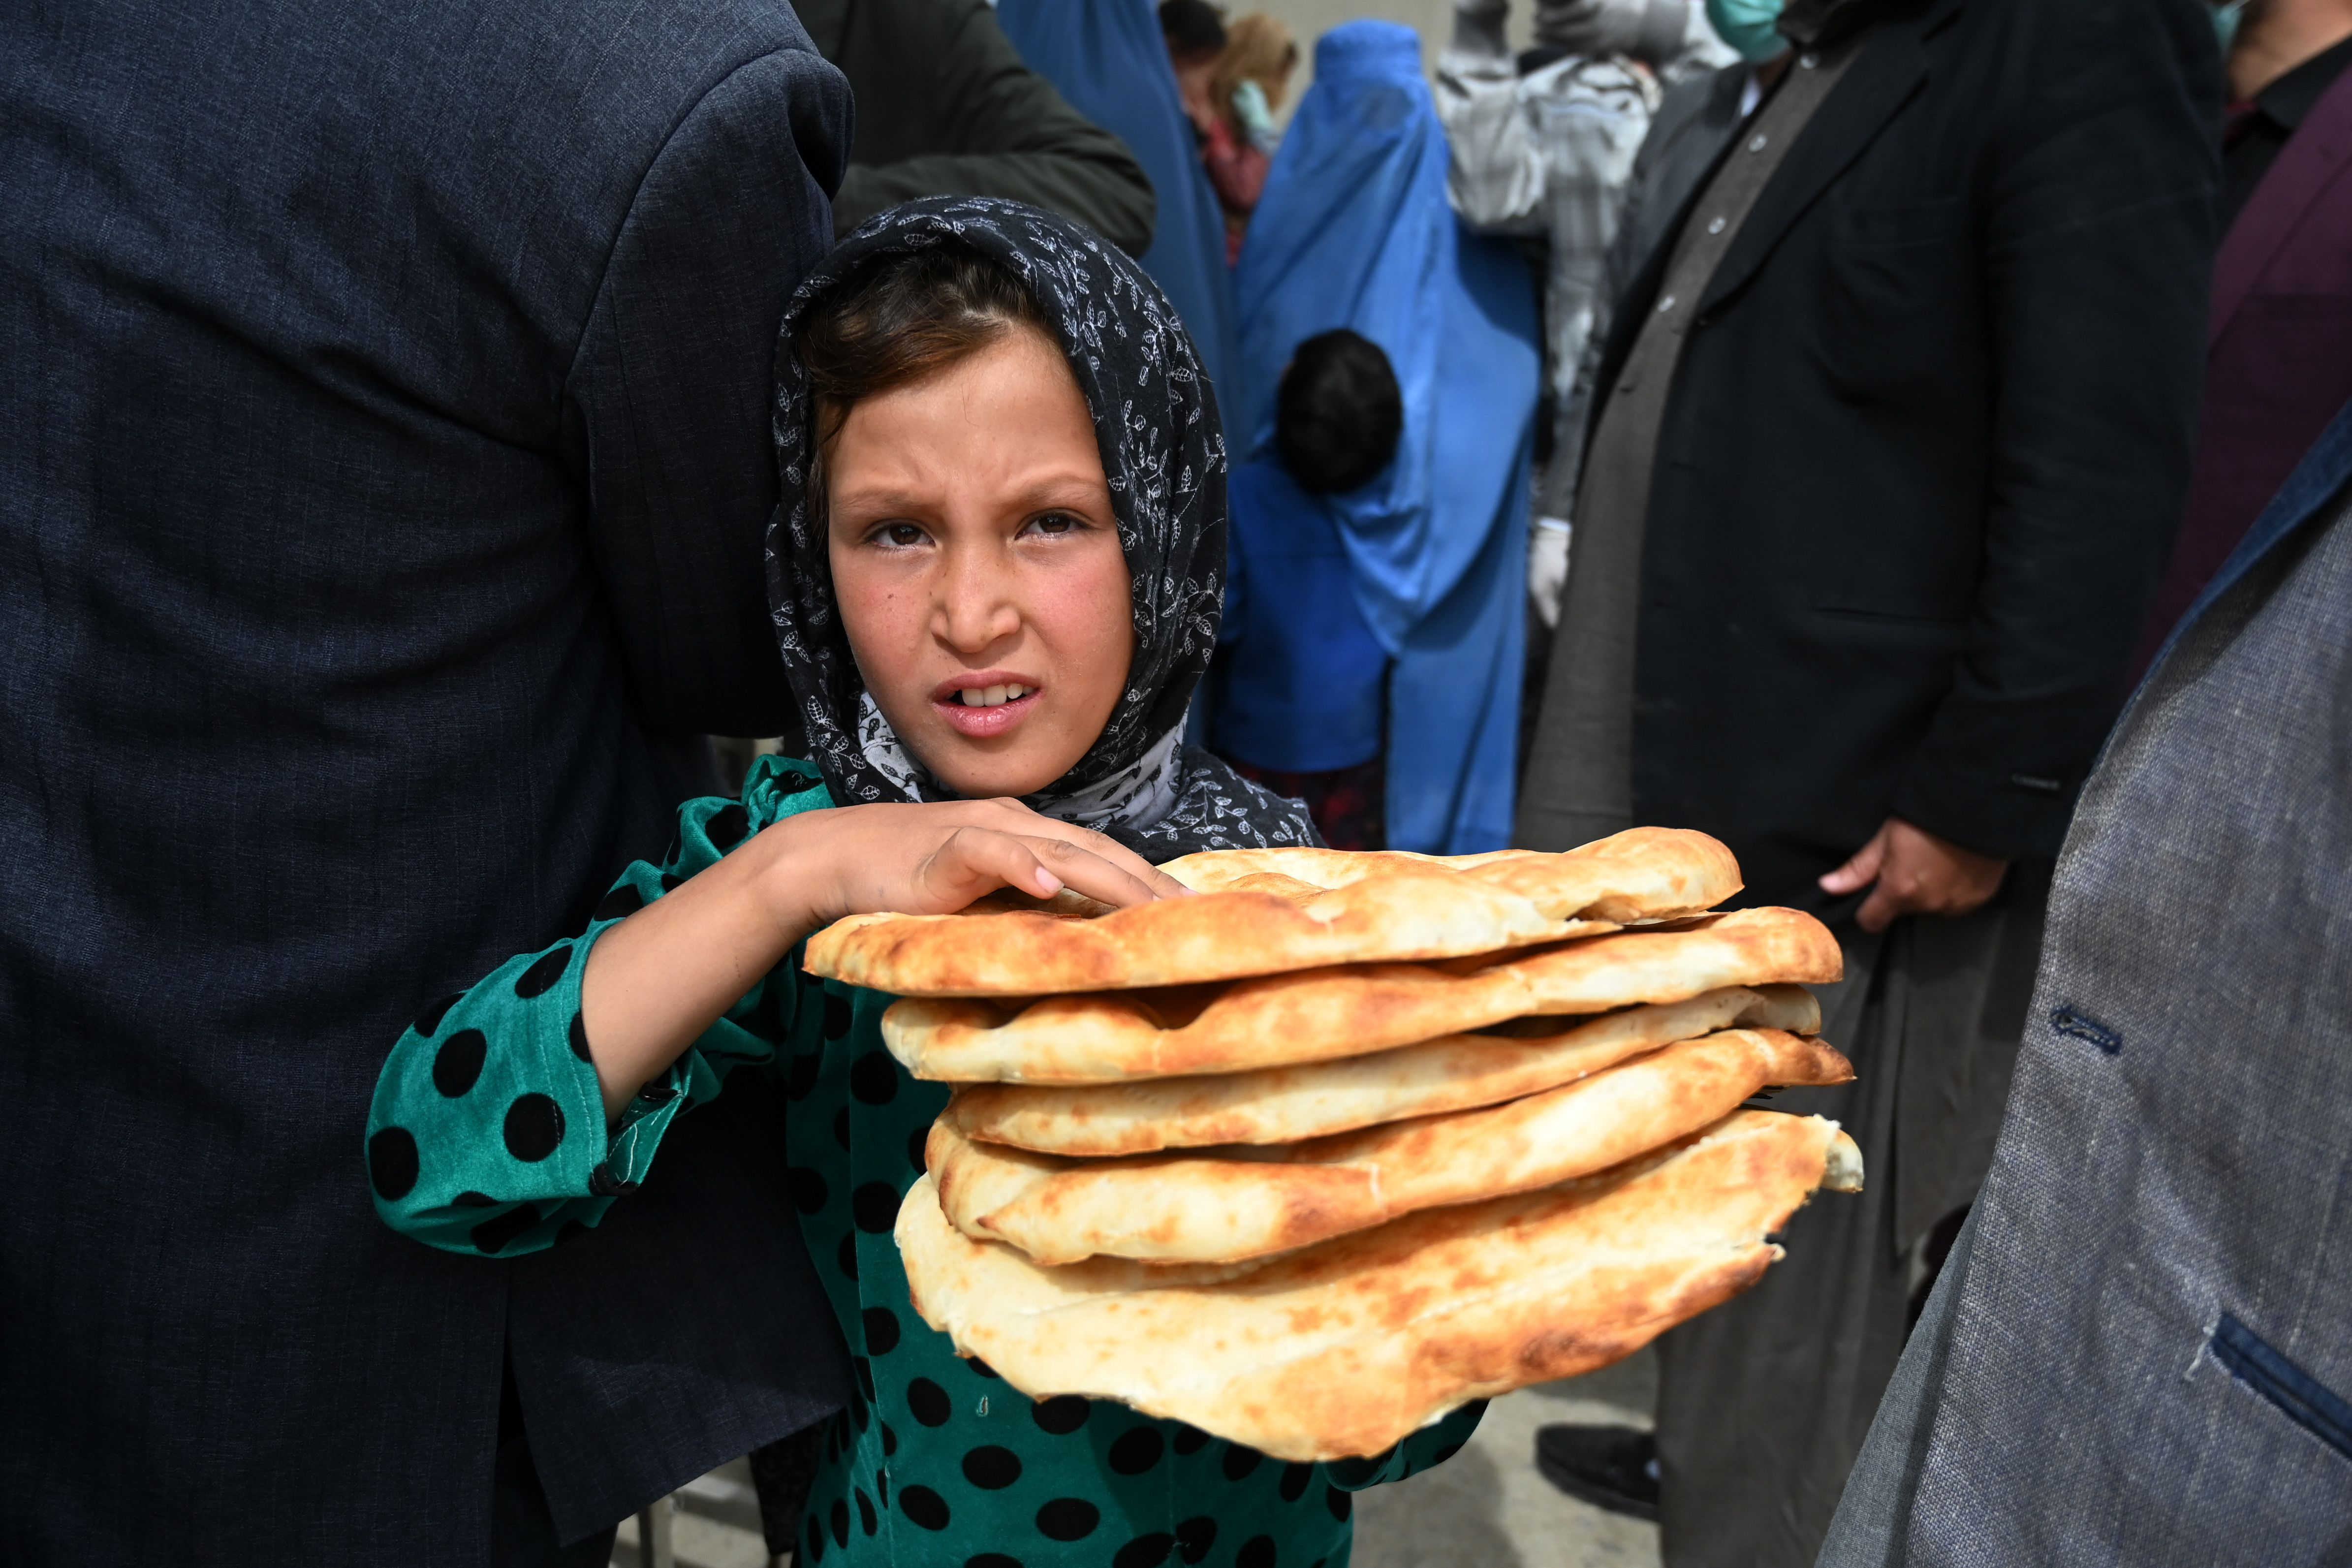 A young girl leaves after receiving free bread from the municipality outside a bakery during the Islamic holy month of Ramadan.(Photo by WAKIL KOHSAR/AFP via Getty Images)